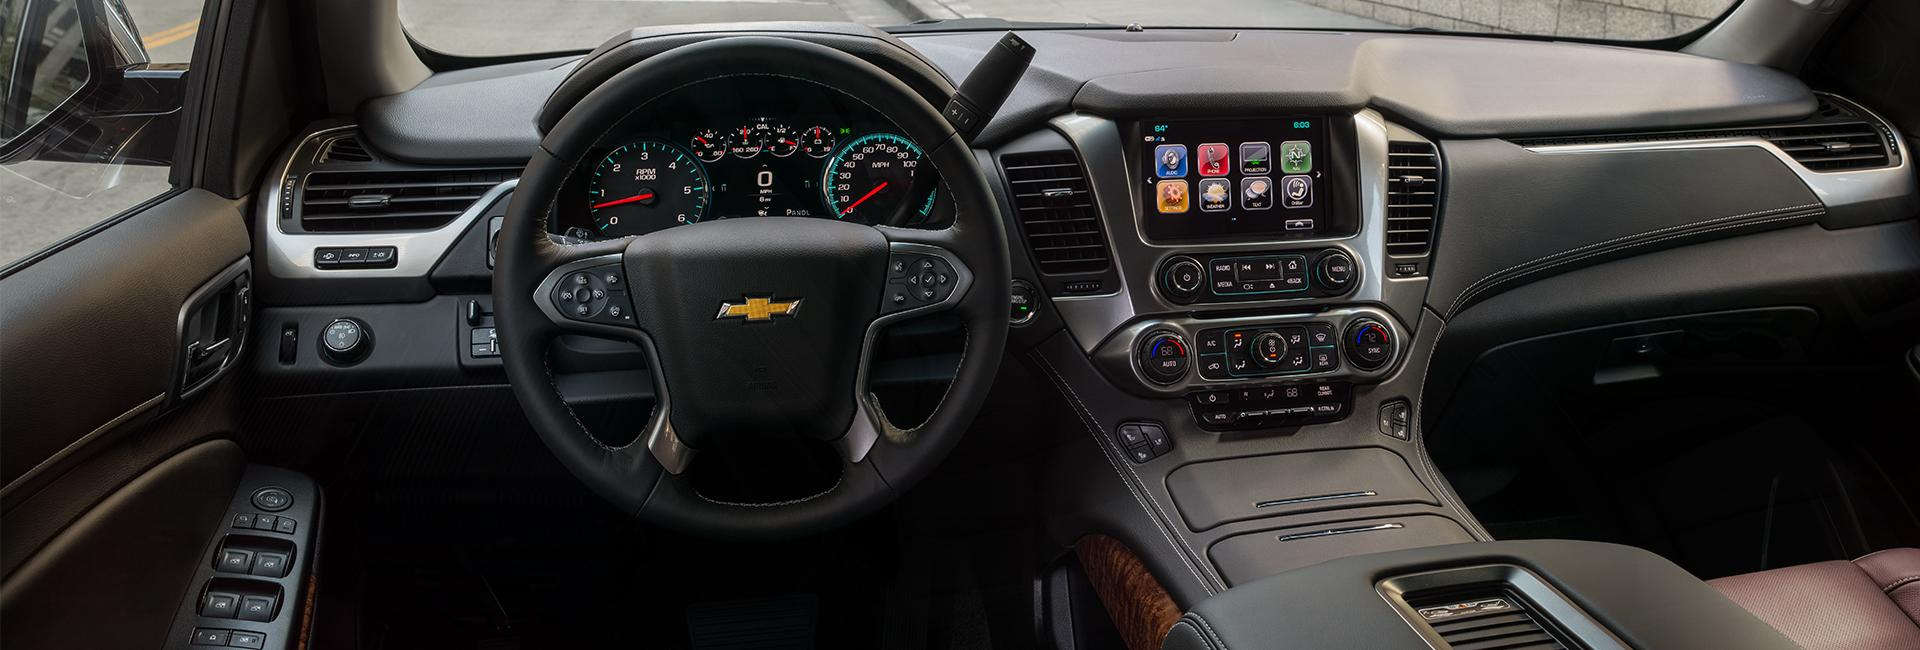 Interior image of the 2020 Chevy Tahoe for sale.